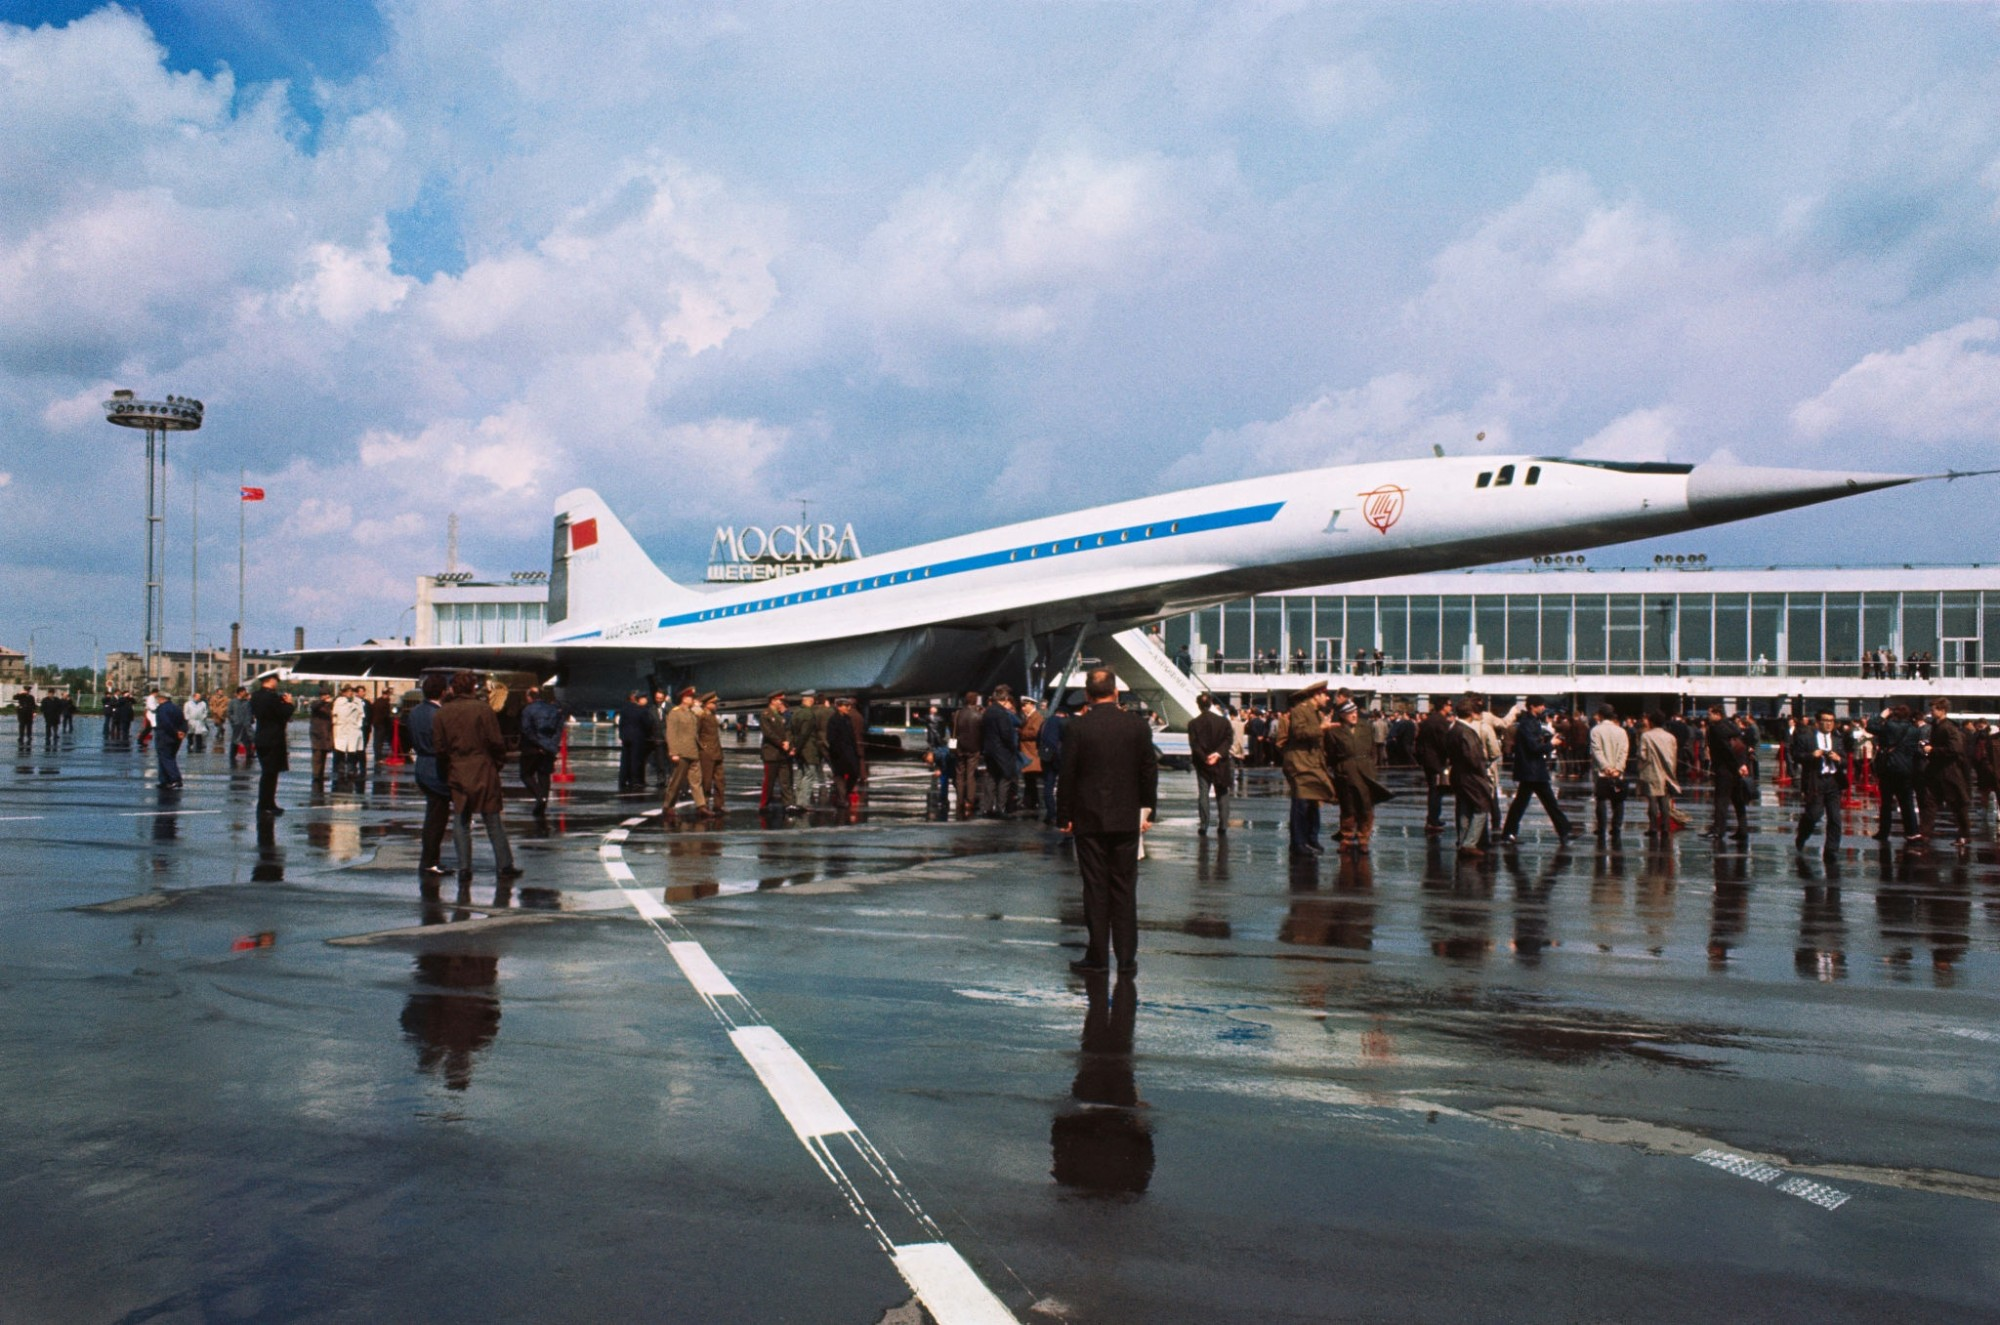 TU-144 supersonic airliner Koncorski is put on diplay for western observers for the first time at Moscow's International Airport May 21st. Russians hope to have the plane on sale in 18 months